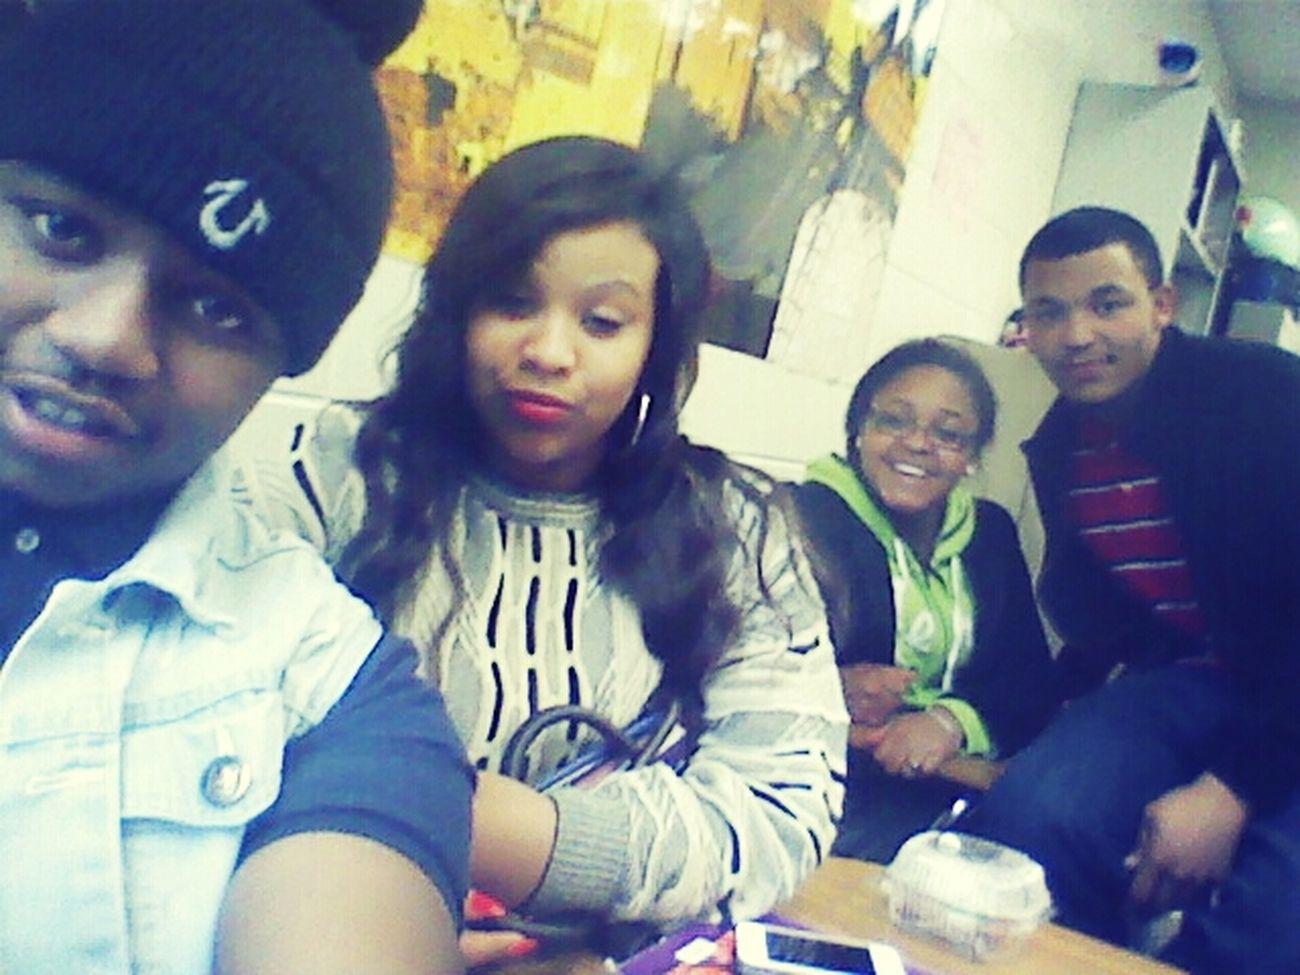 me and my niggas up in class